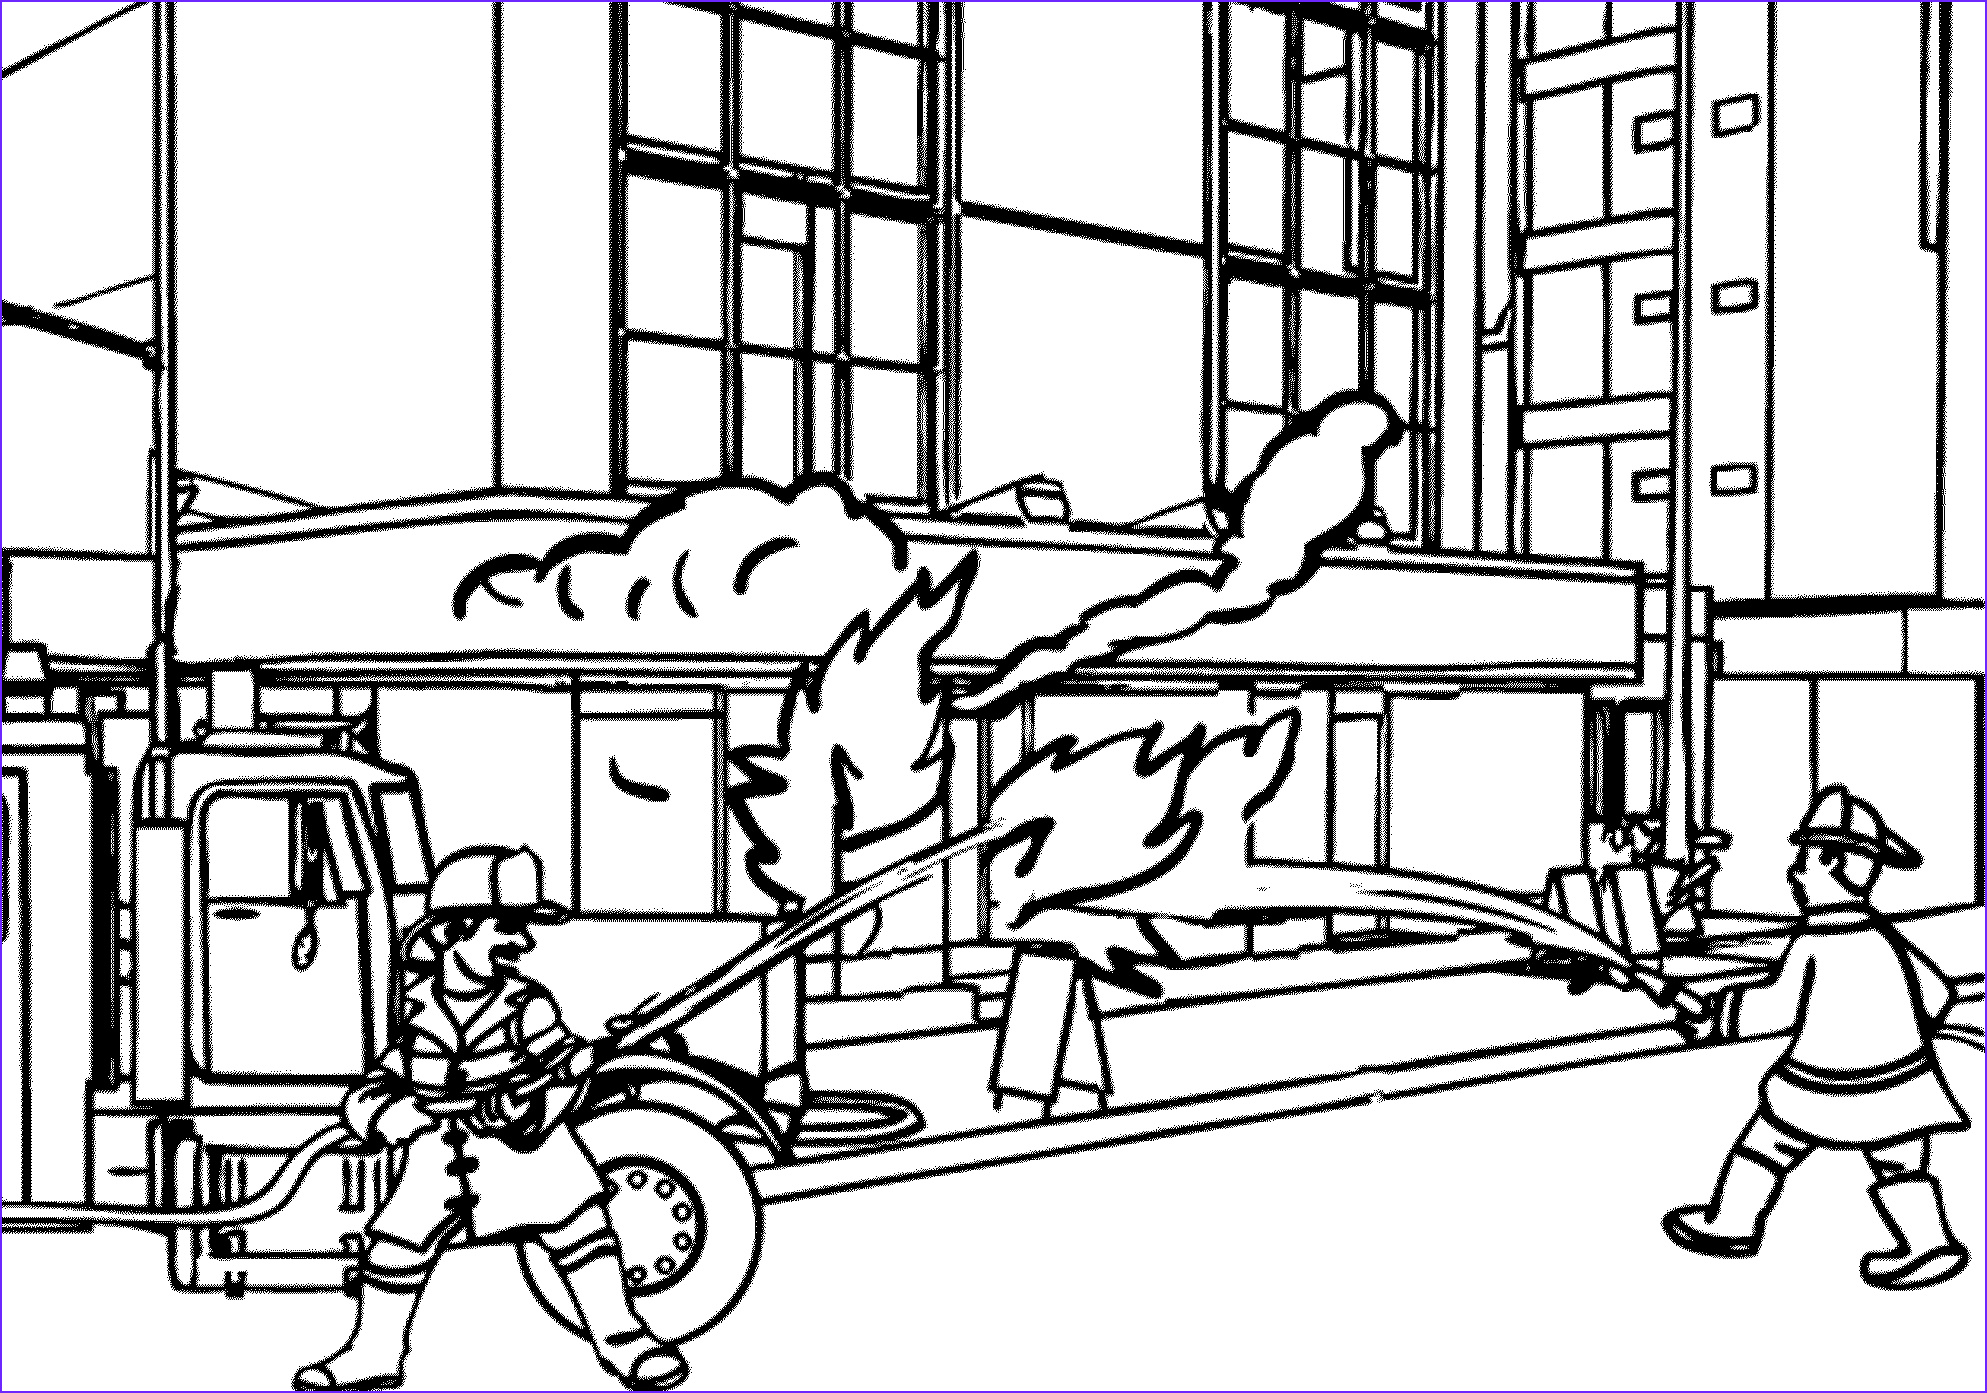 Fire Truck Coloring Pages Elegant Photos Print & Download Educational Fire Truck Coloring Pages